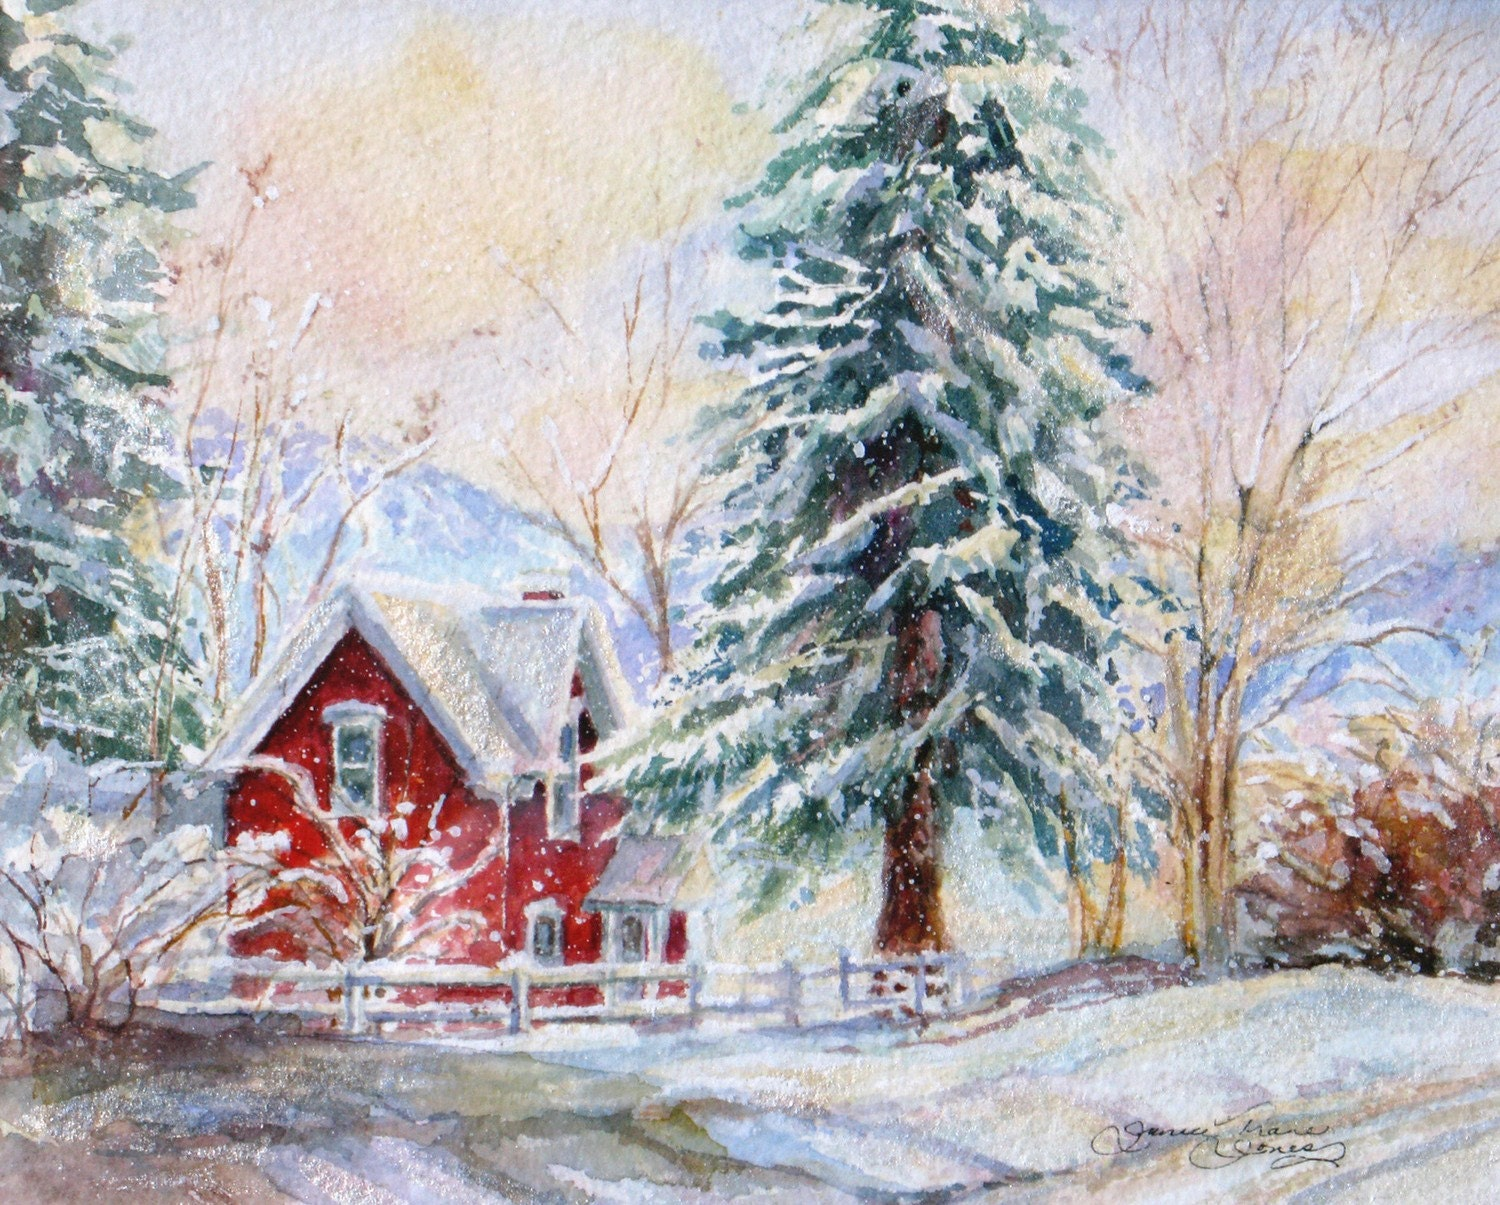 Winter Snow Signed Giclee Print Watercolor Snow Painting